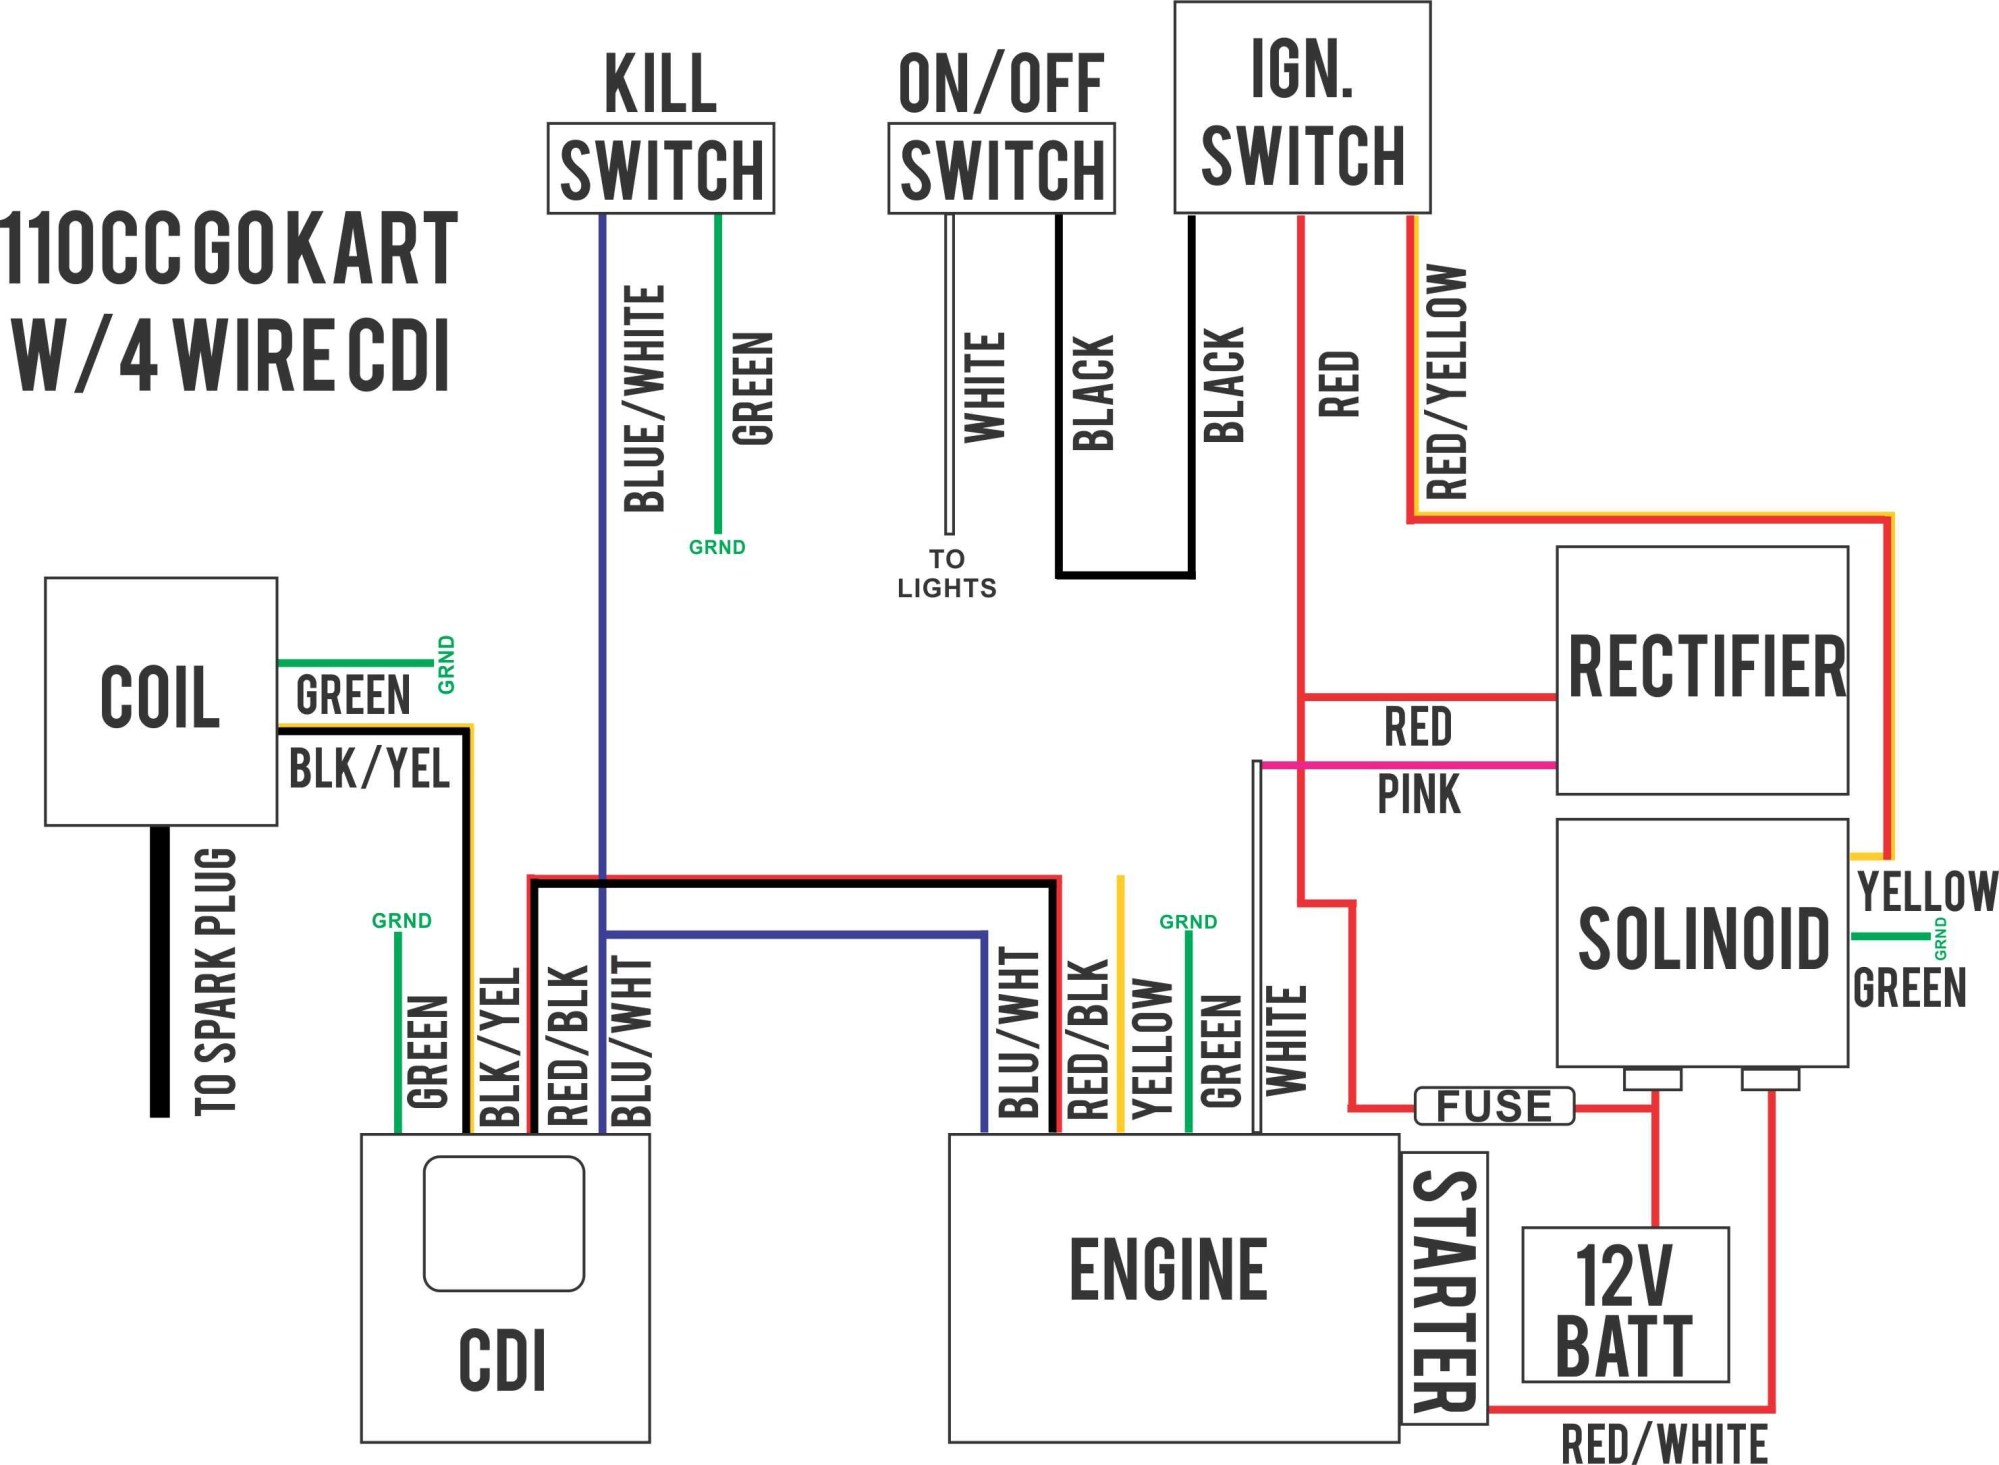 hight resolution of quad schematic wiring wiring diagram go 110 cc atv electrical diagram wiring diagram inside quad schematic